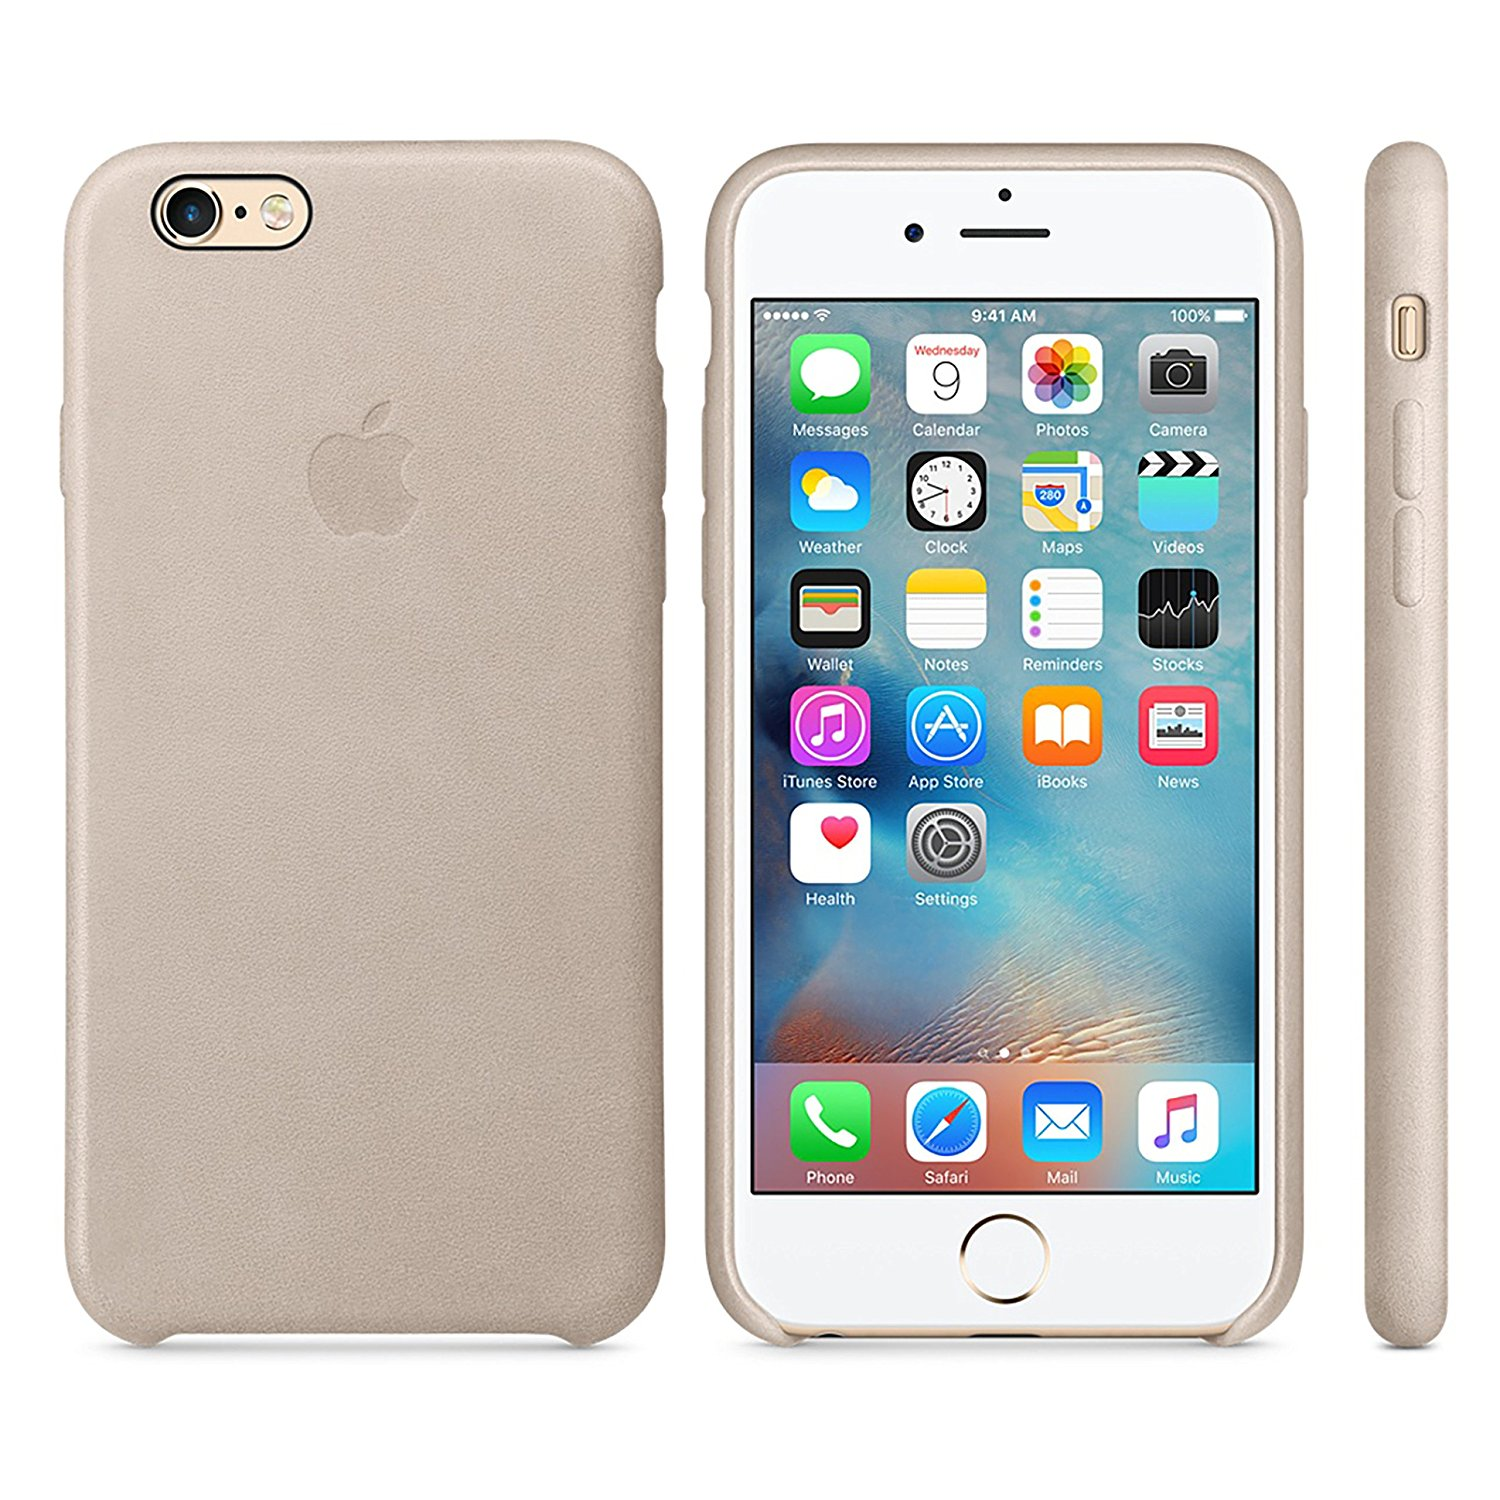 detailing ae77f 57539 Apple OEM Leather Case - for iPhone 6 Plus / 6s Plus - Rose Gray (New)